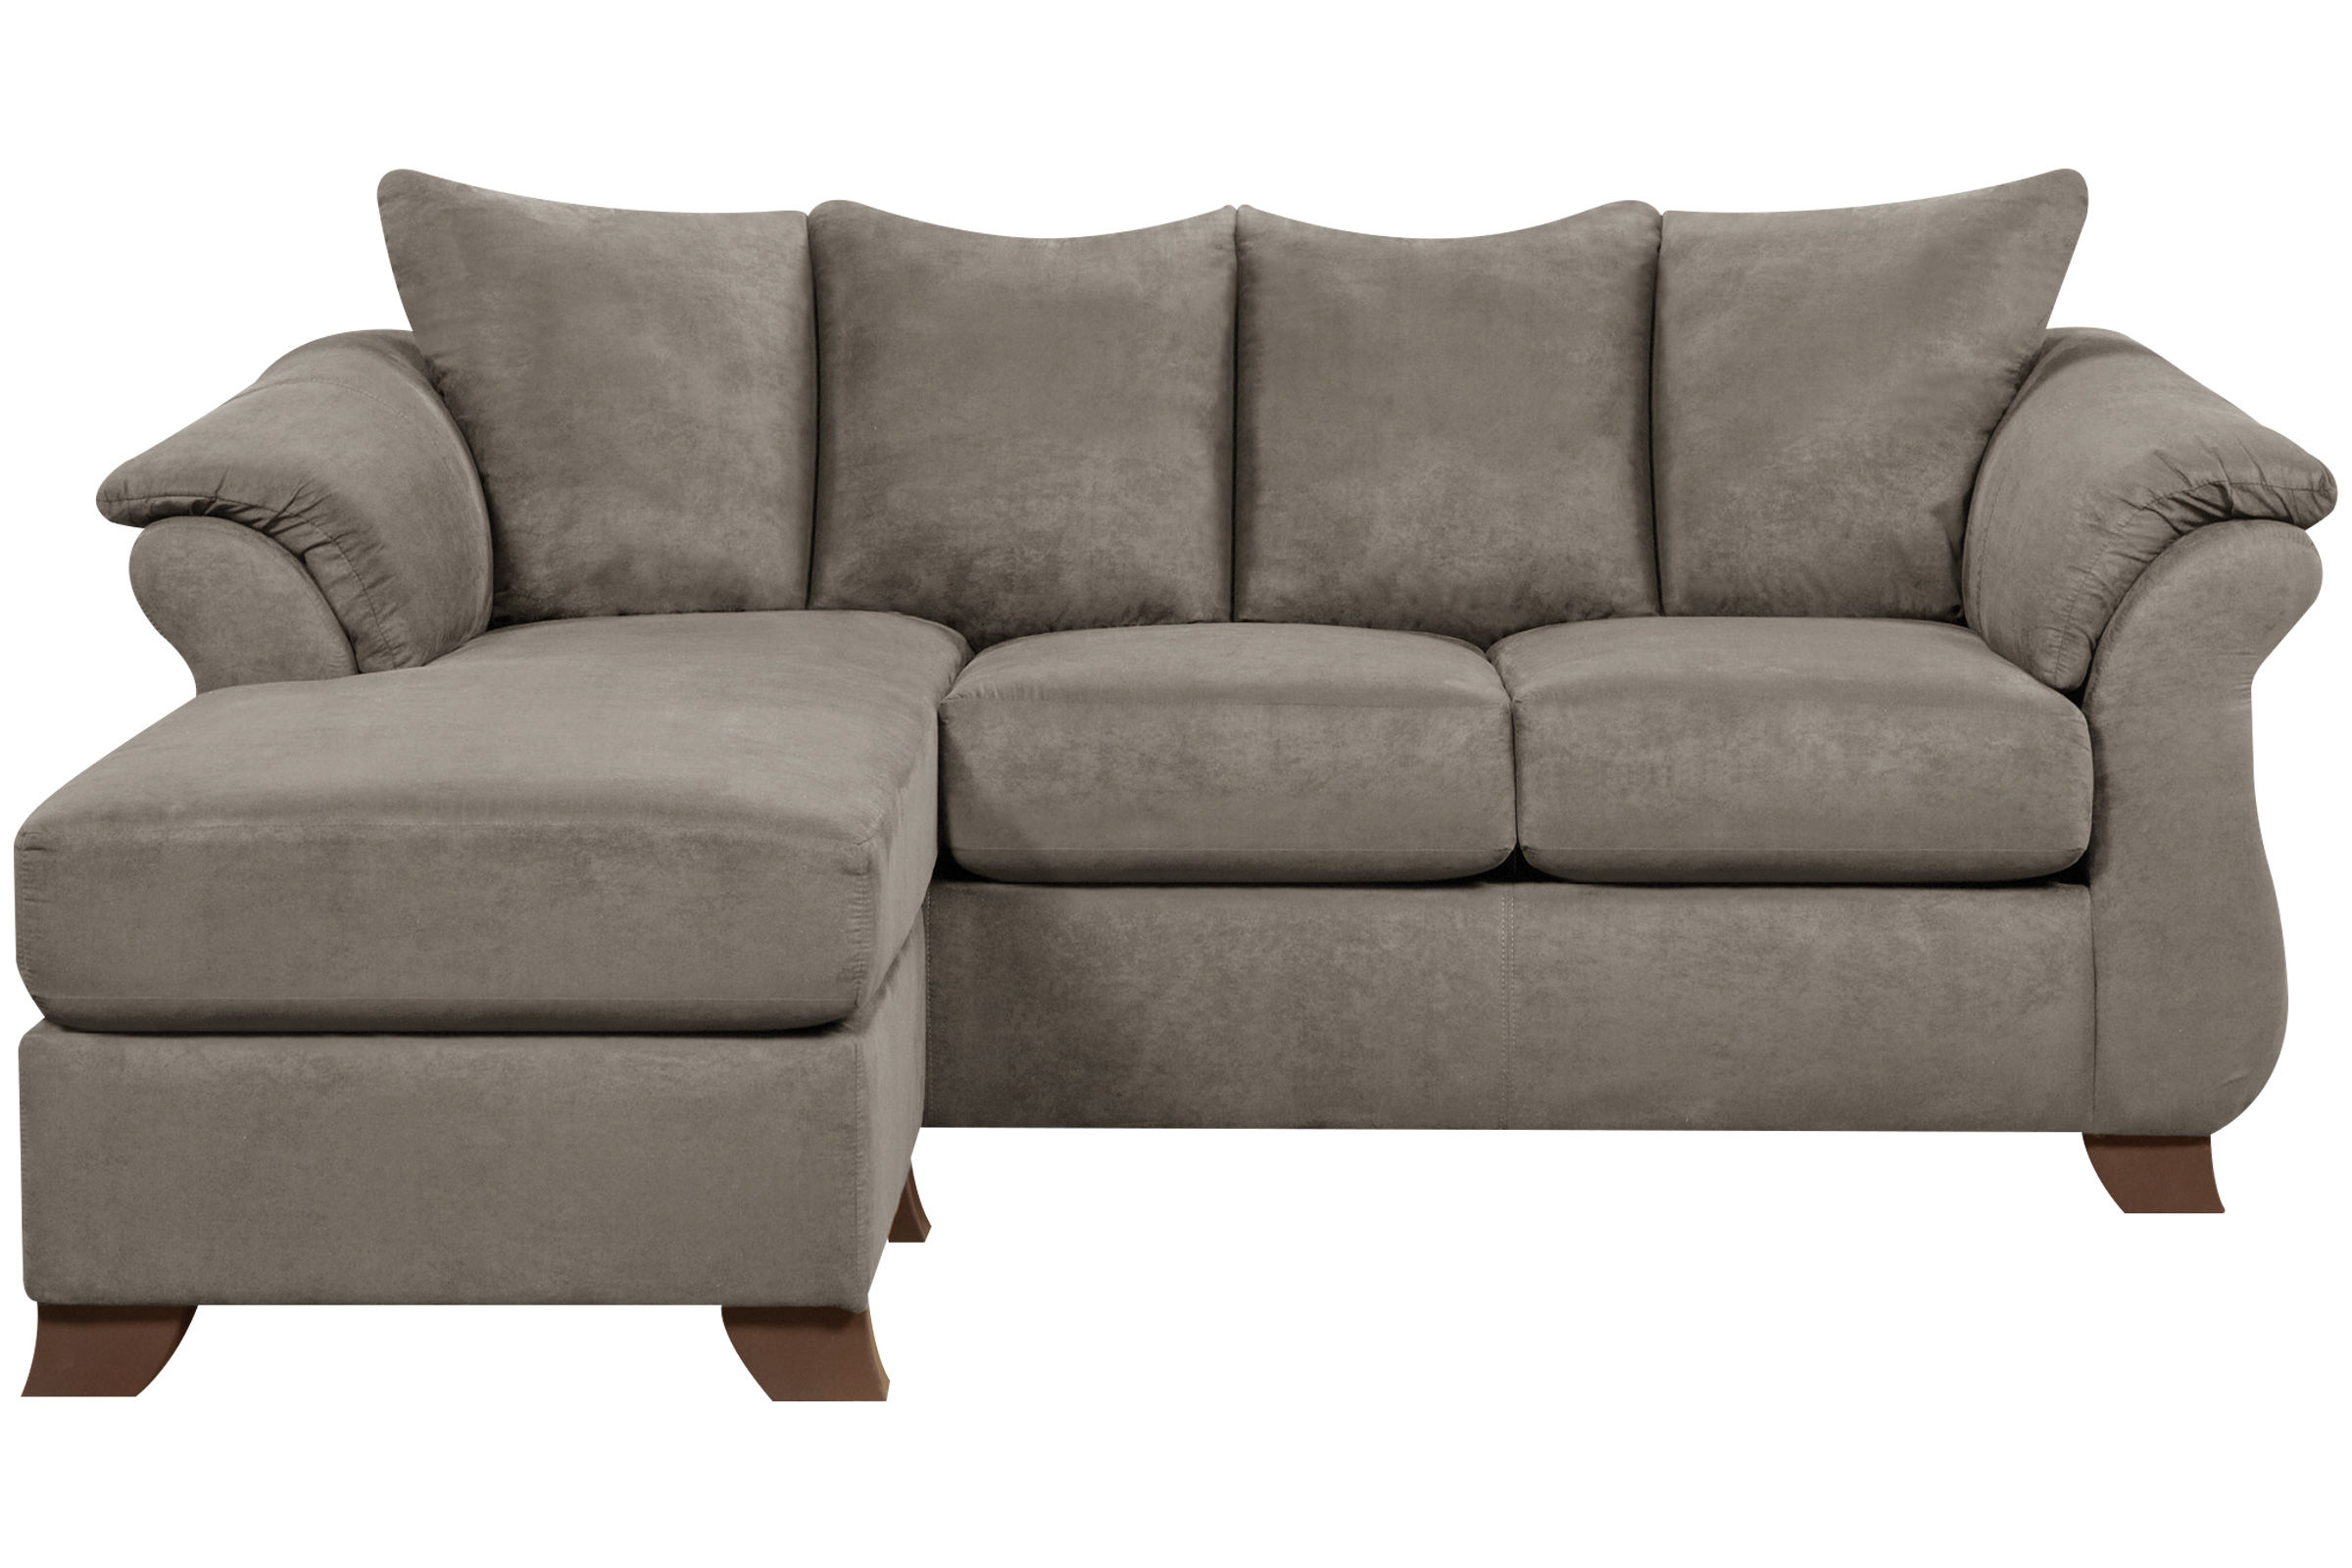 best briarwood microfiber sofa collection-Elegant Briarwood Microfiber sofa Inspiration